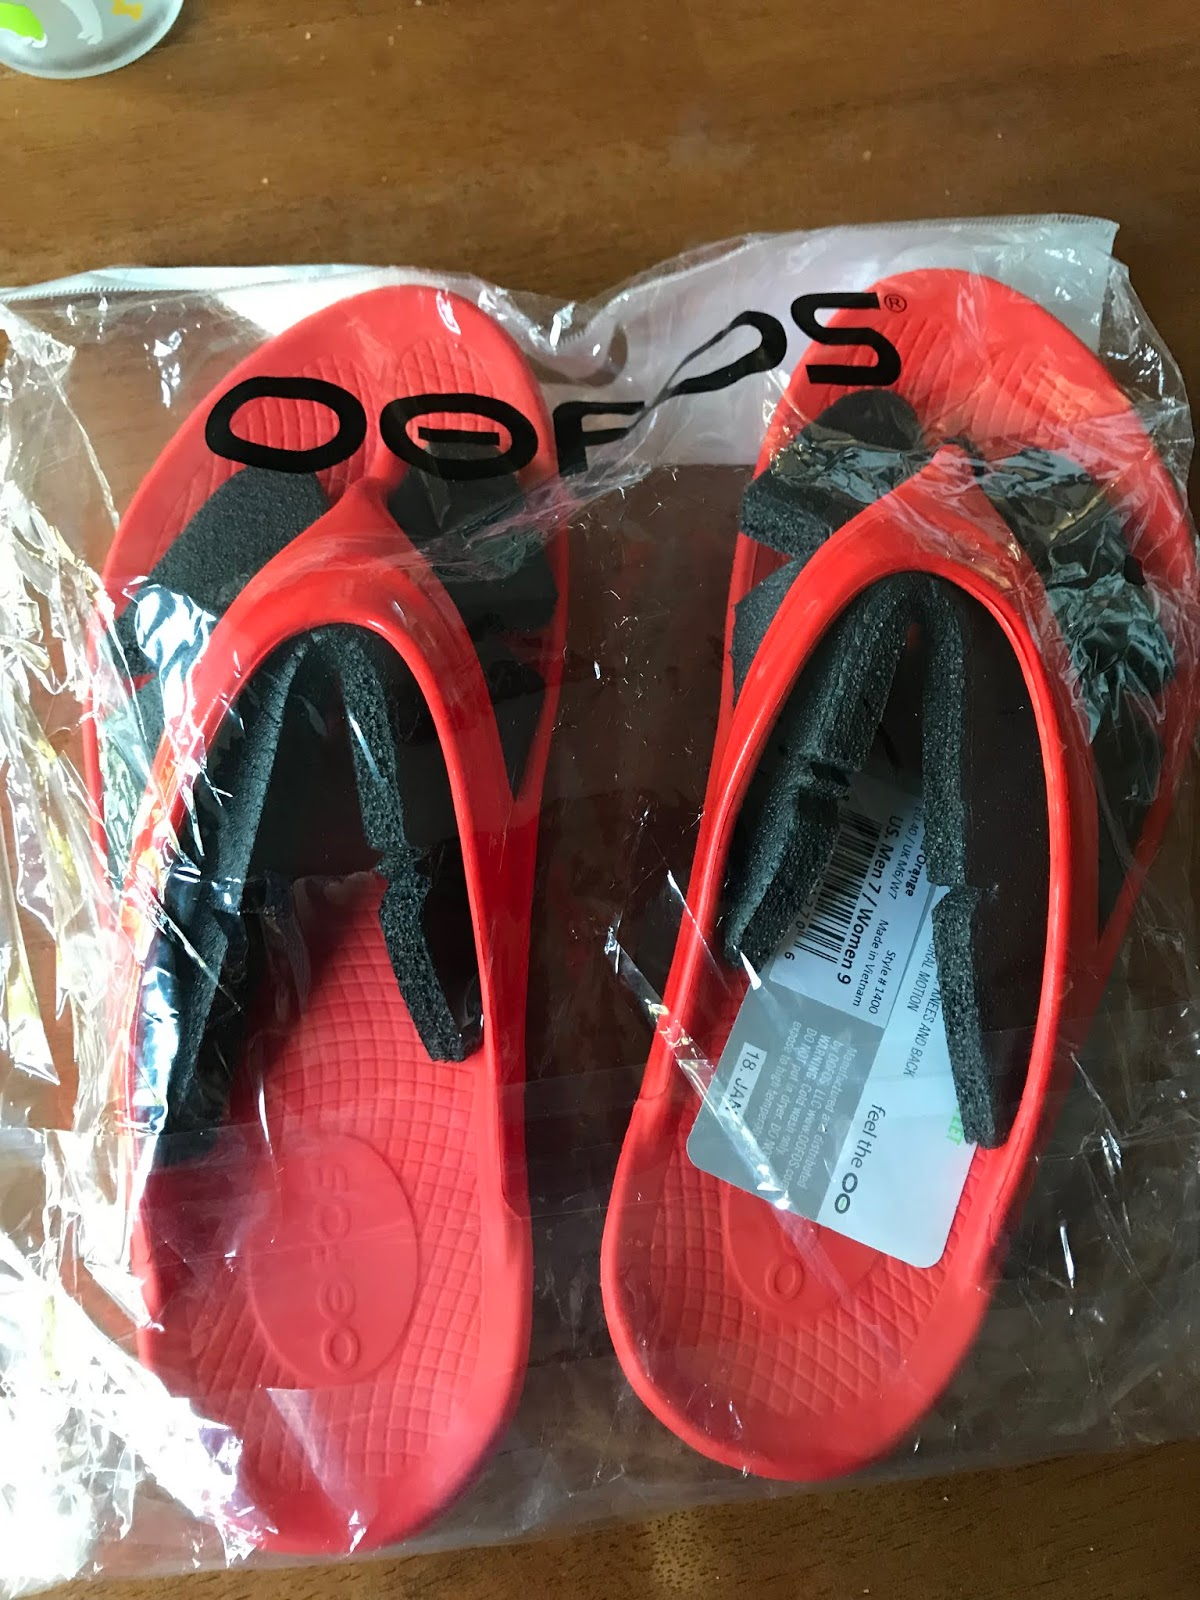 d186bb3b3a49 oofos oolala reviews Oofos OOlala Product review